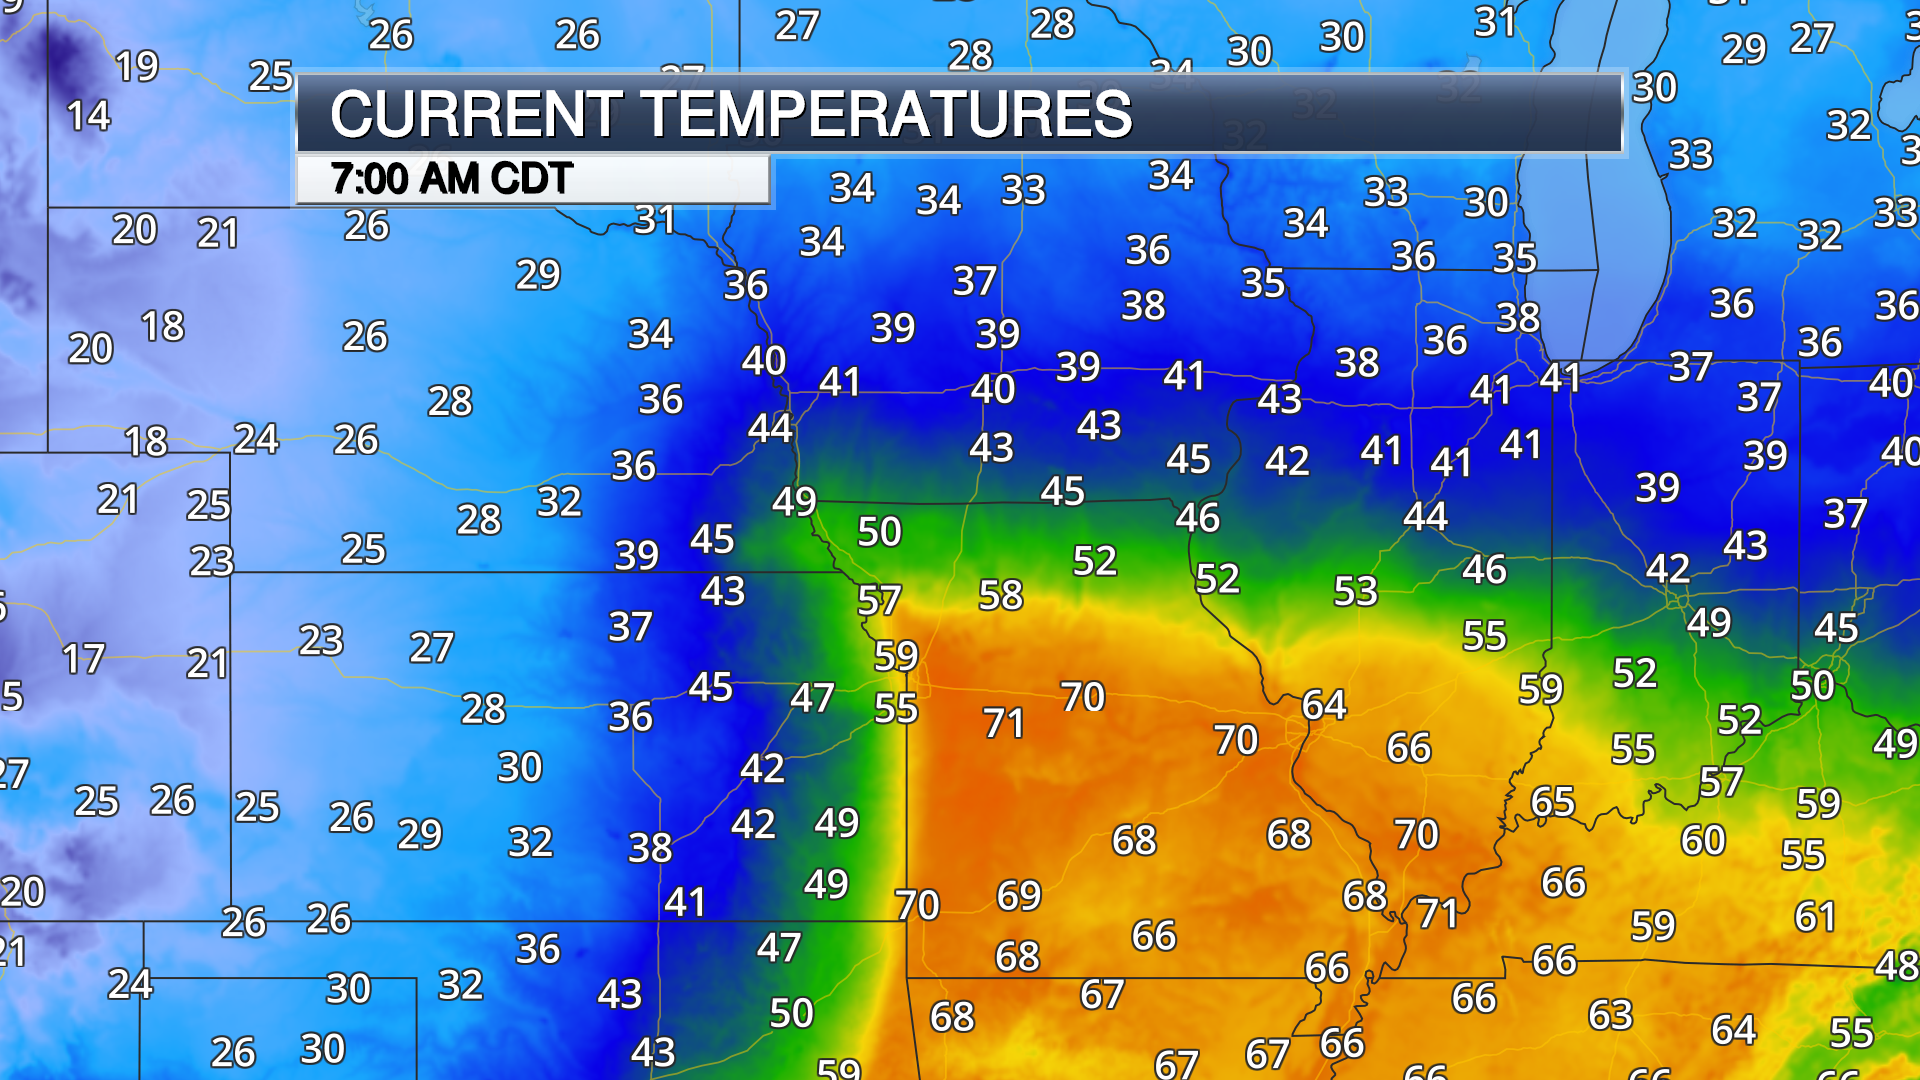 current temperature weather map with color contour from April 2019 blizzard